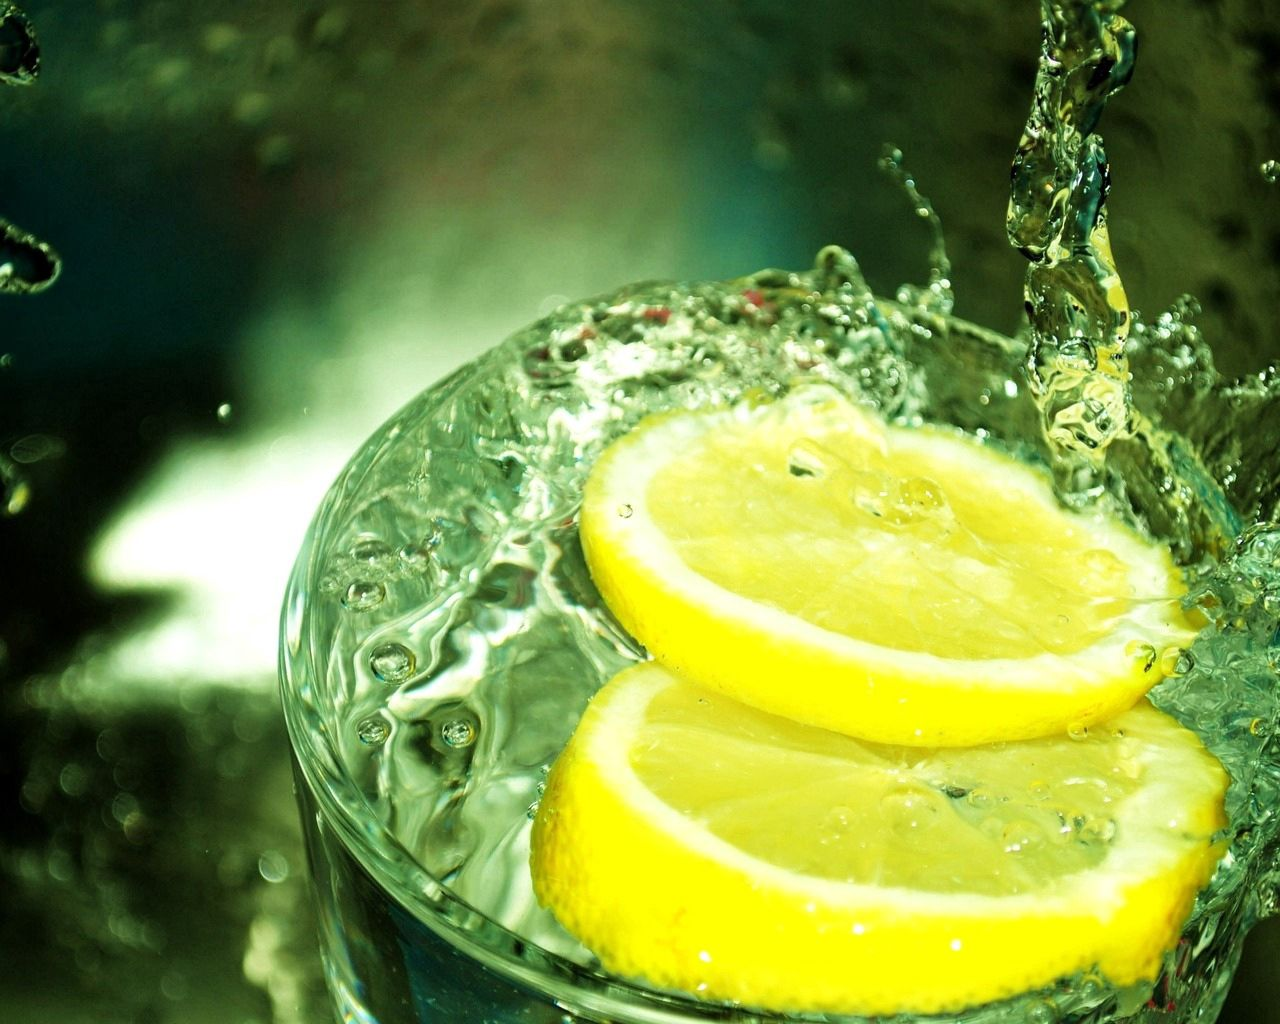 88438 download wallpaper Macro, Spray, Splash, Lemon, Lobules, Slices, Slice, Section screensavers and pictures for free